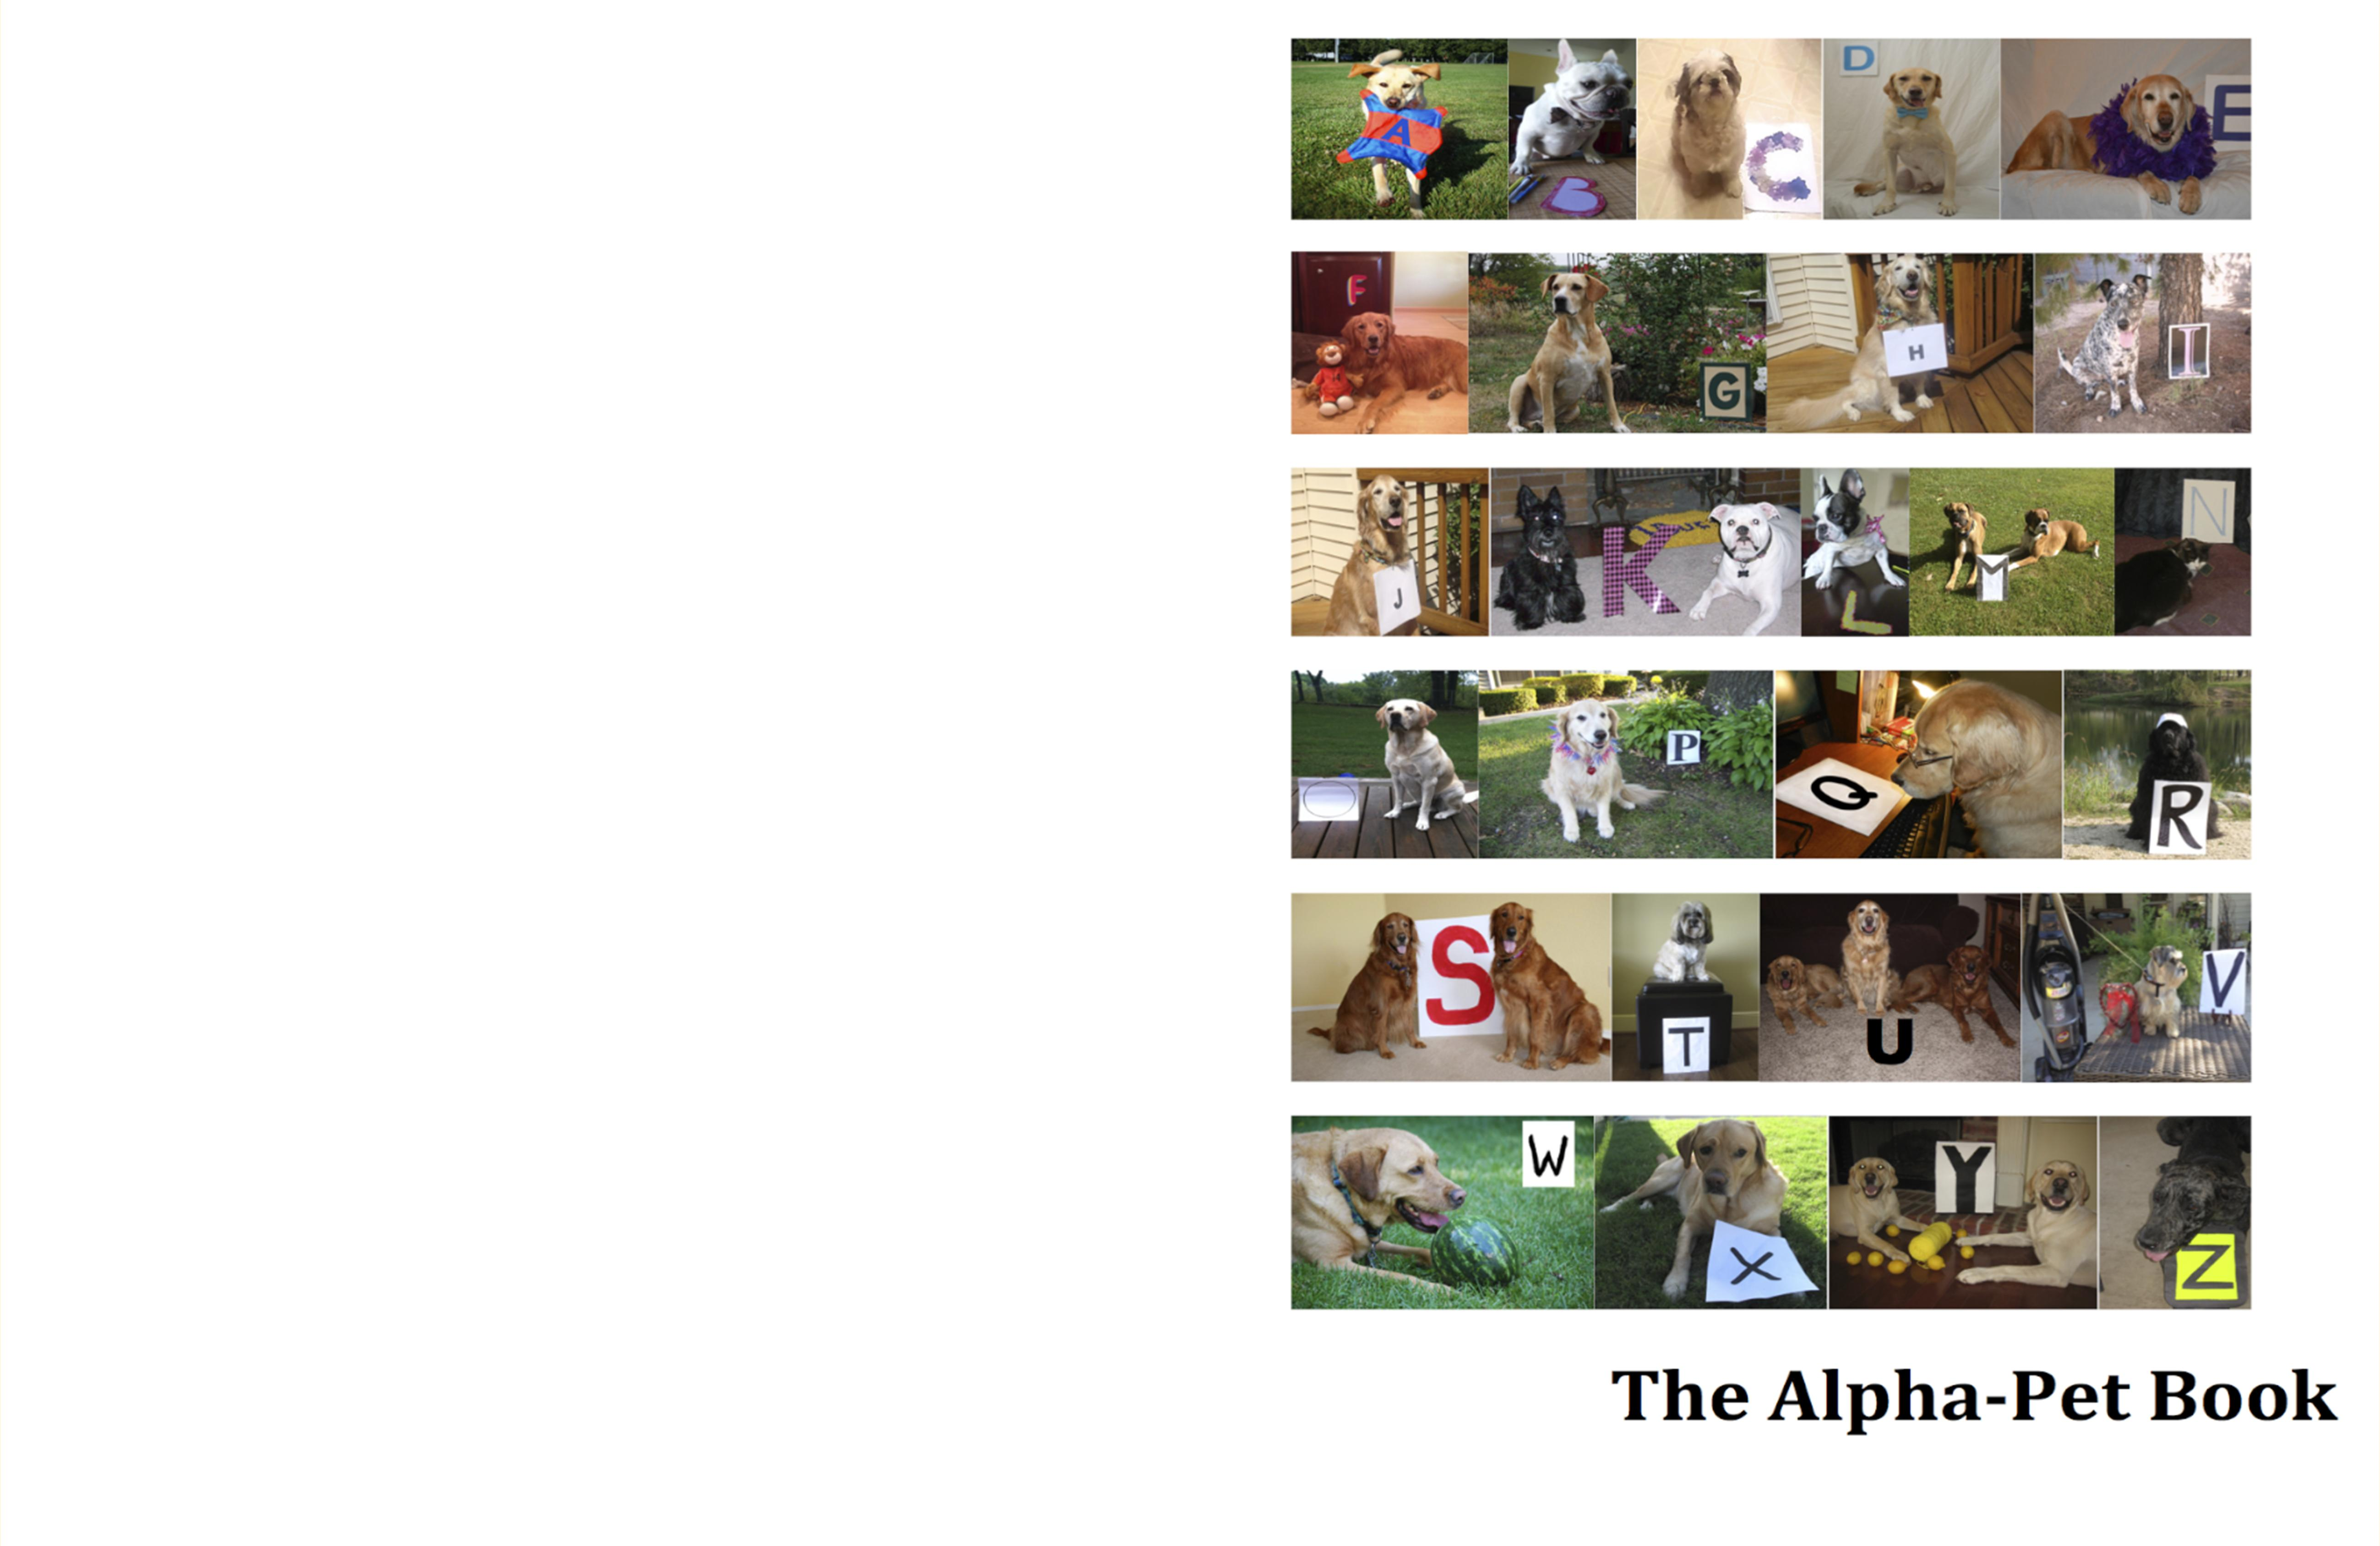 The Alpha-Pet Book cover image